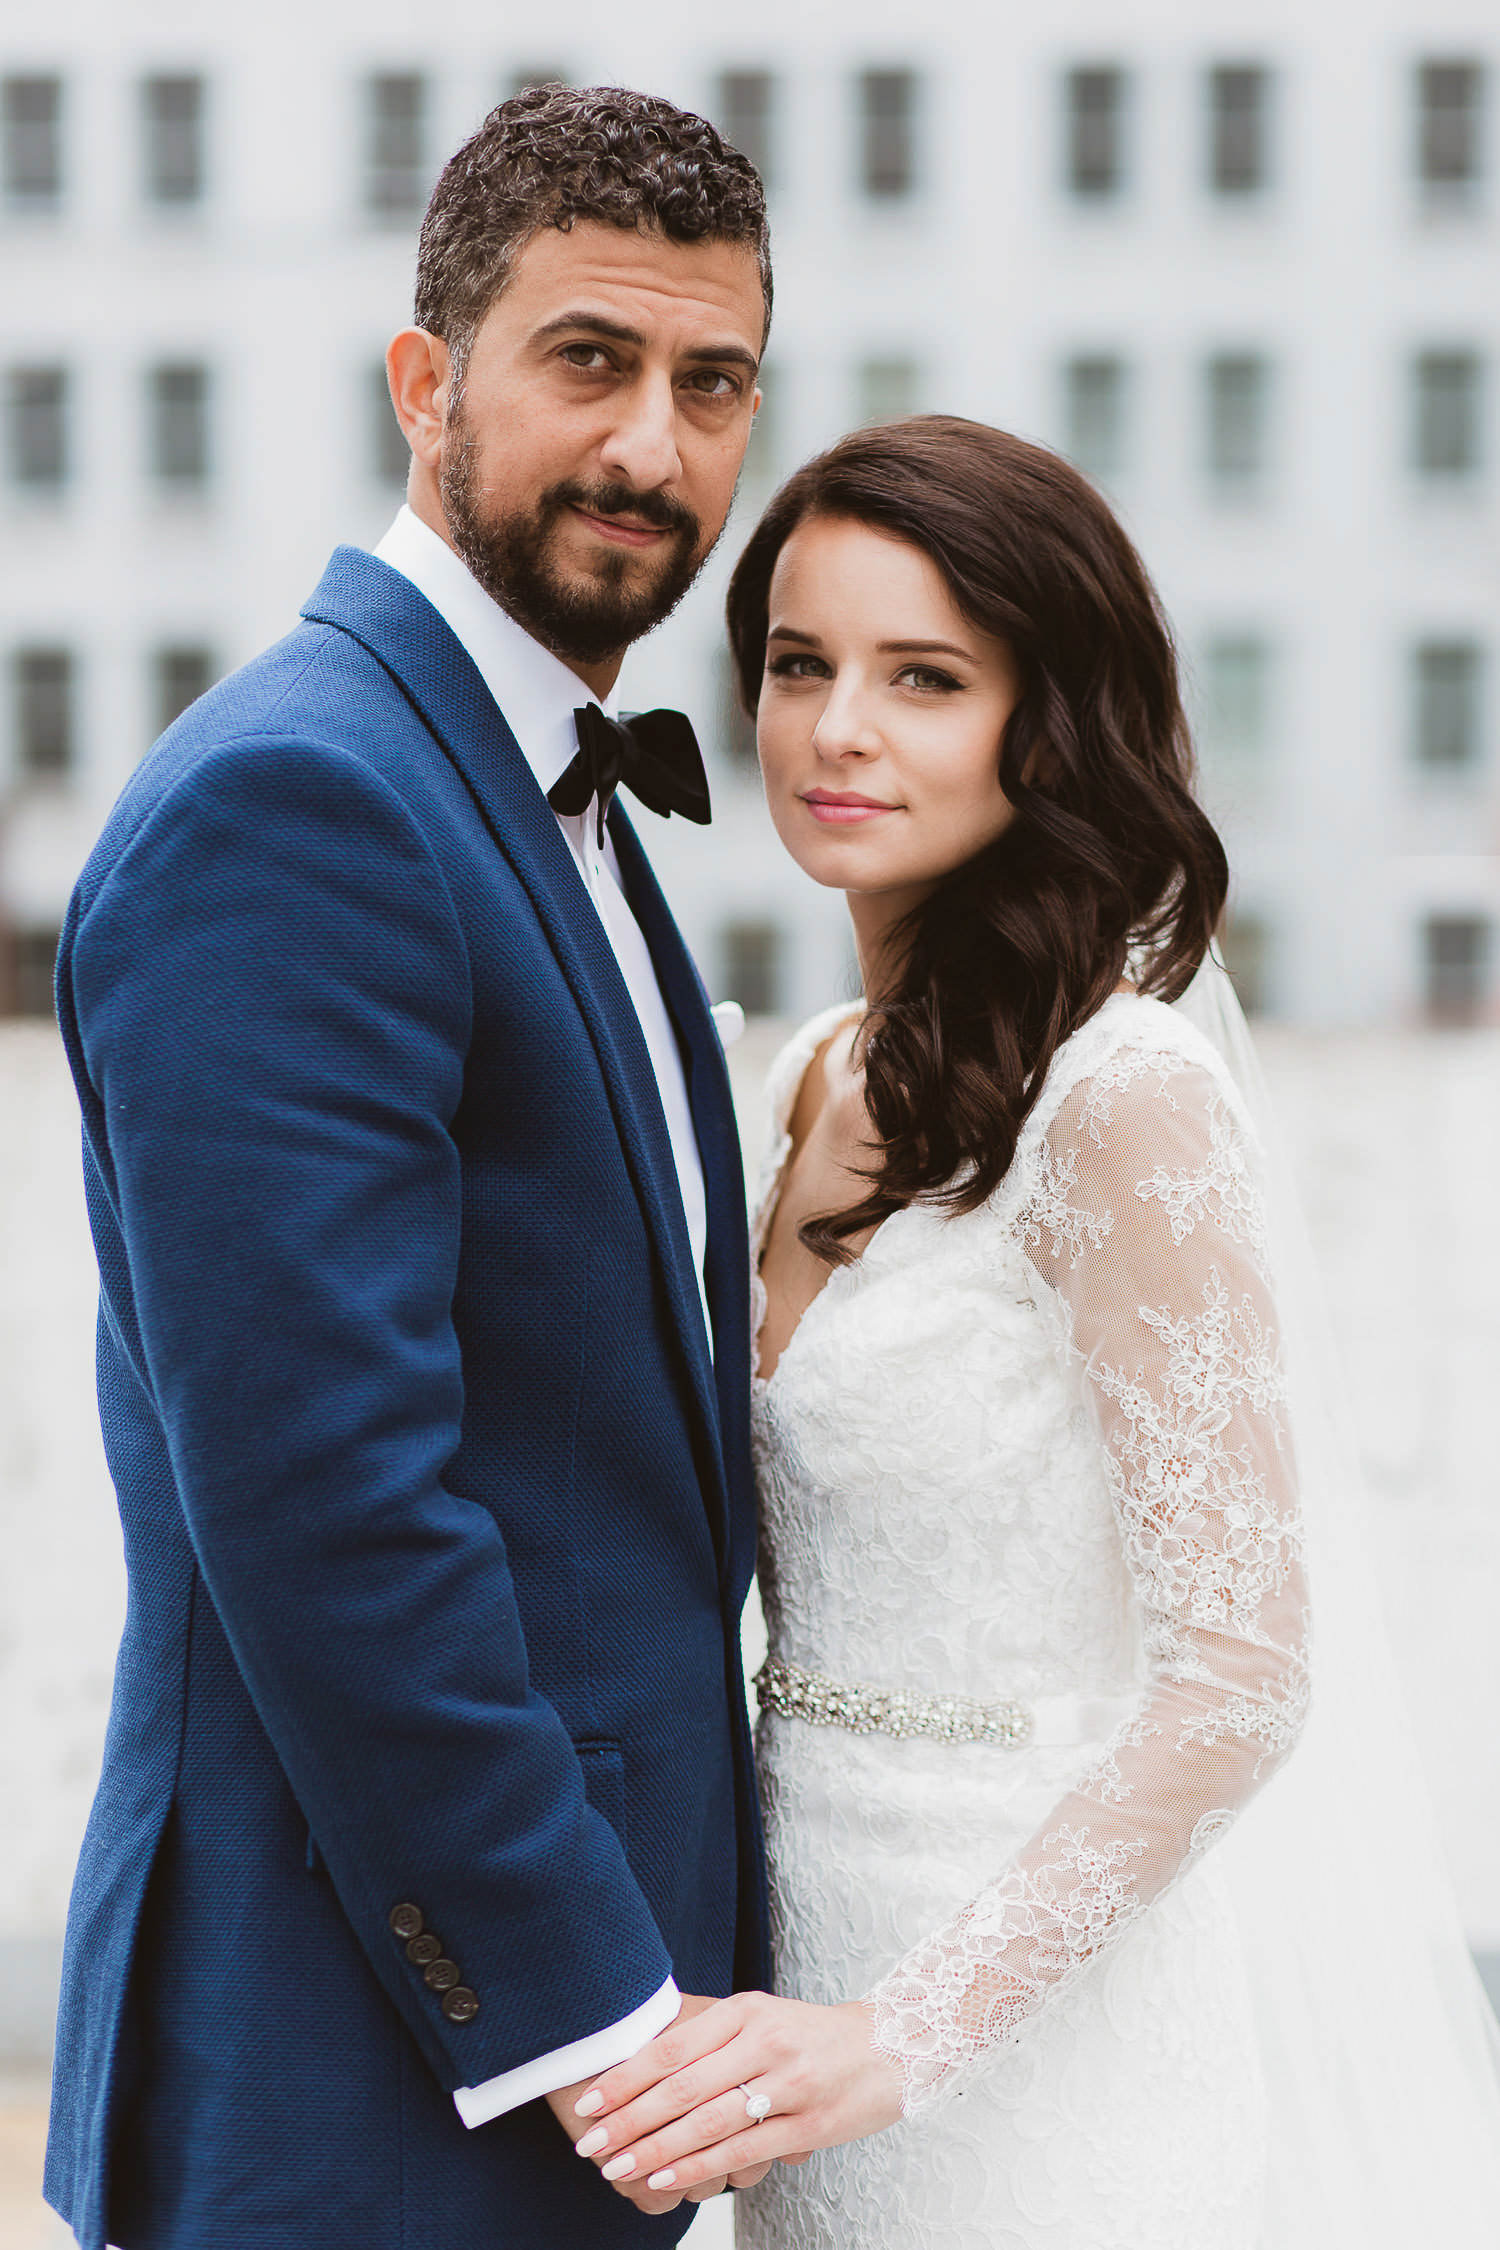 Stylish chic wedding in downtown Vancouver, Maggie Sottero bride | Photo: Camilla Anchisi